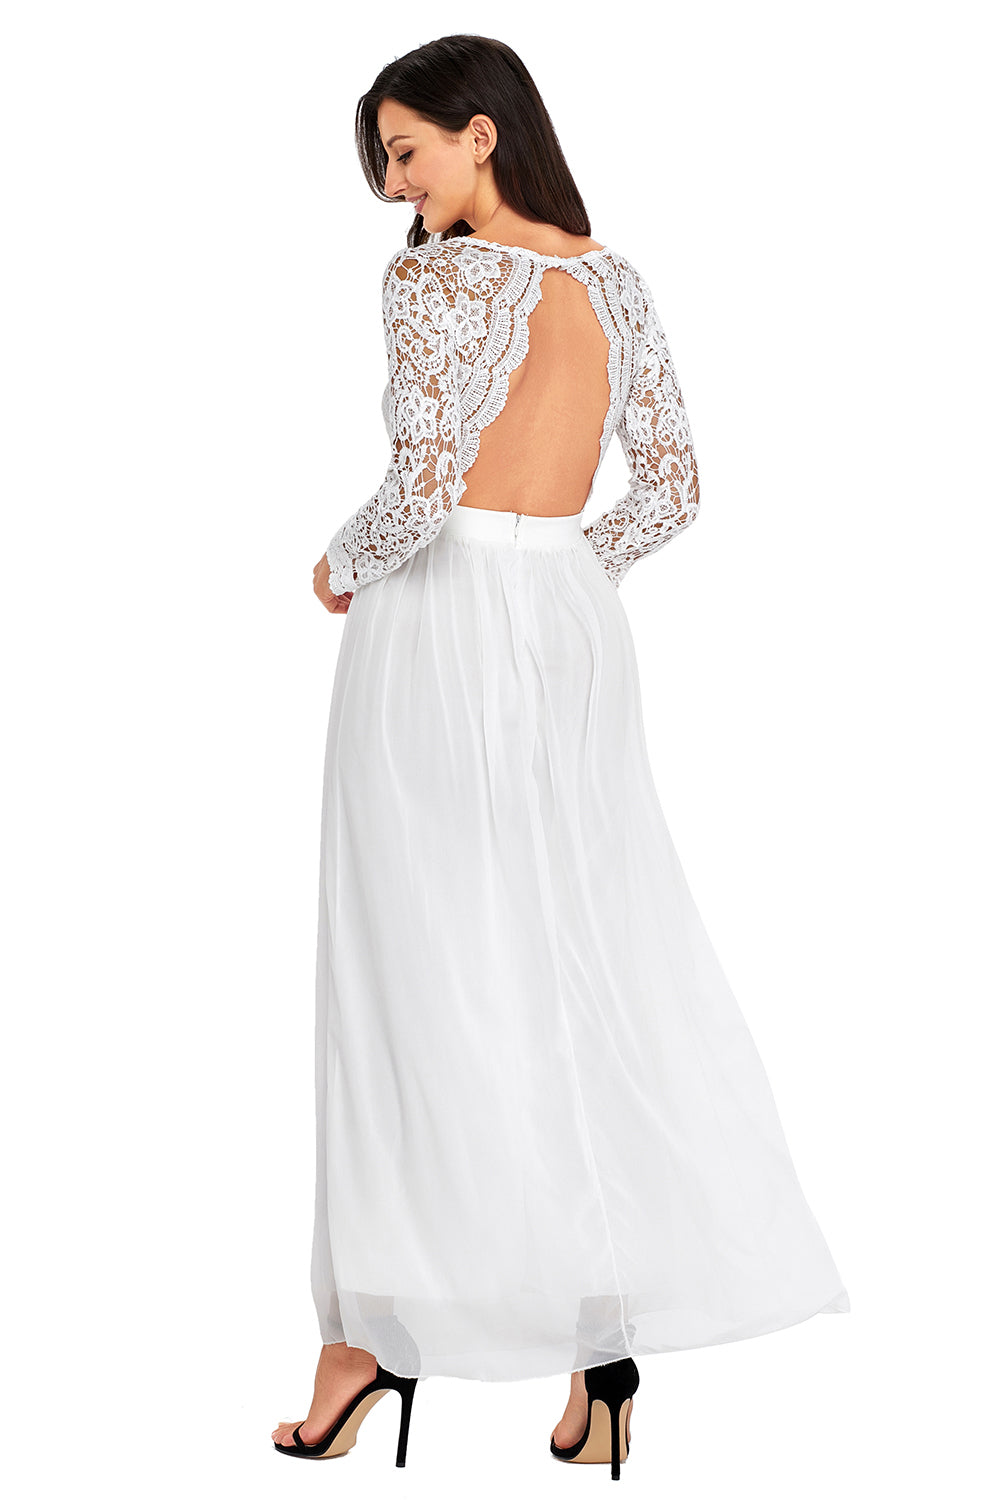 9f568a8b0f0 Long Sleeve White Crochet Maxi Dress - Aztec Stone and Reclamations